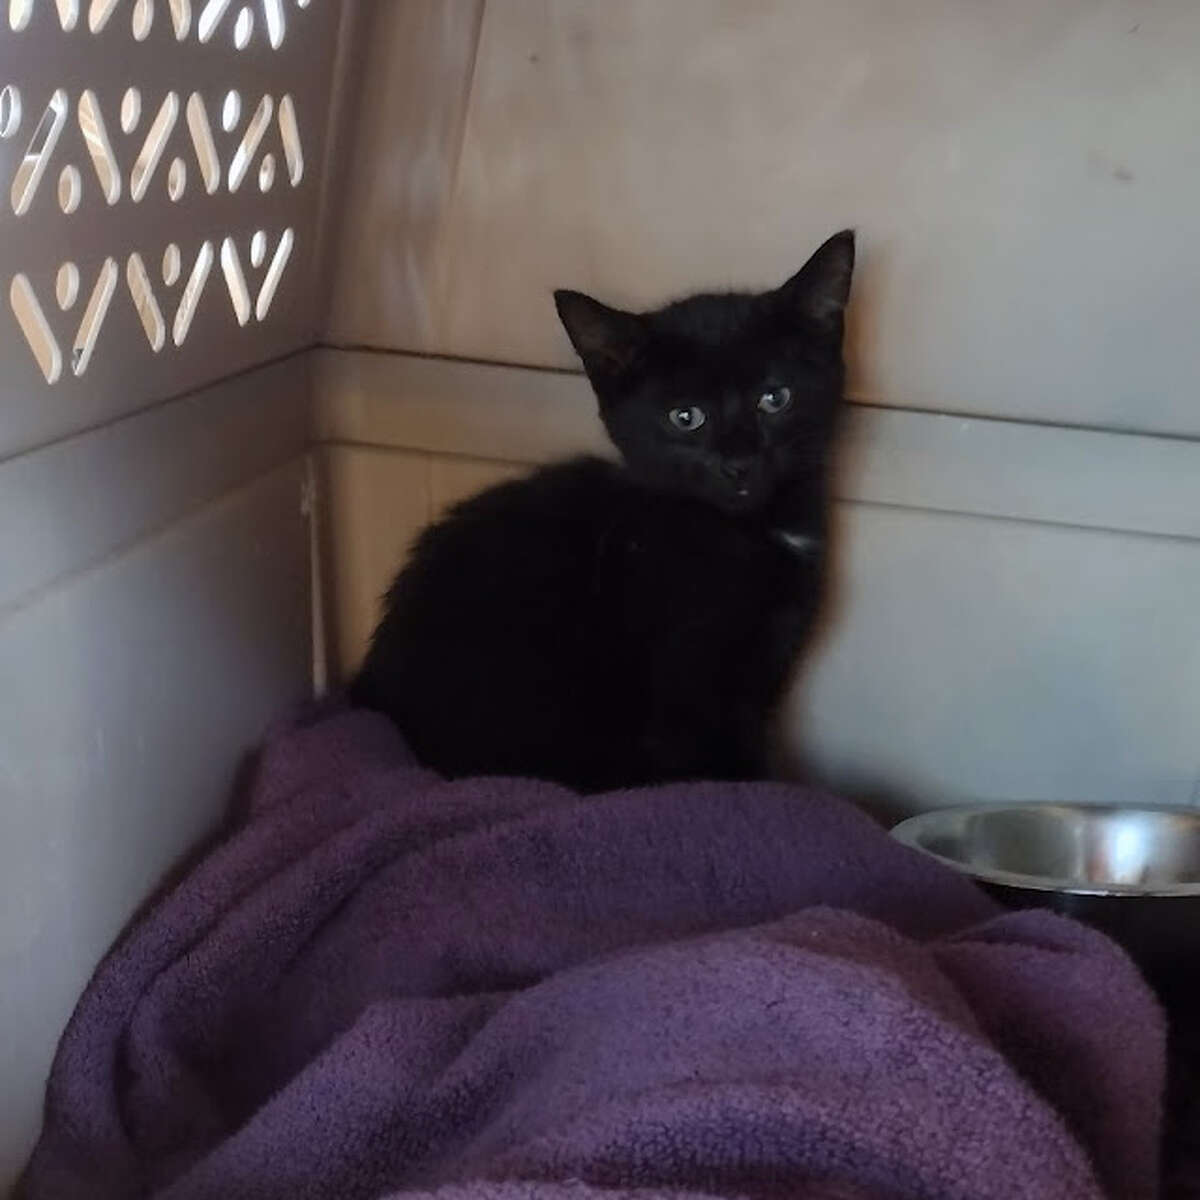 The 8-week-old kitten was rescued from the Hood Canal Bridge.